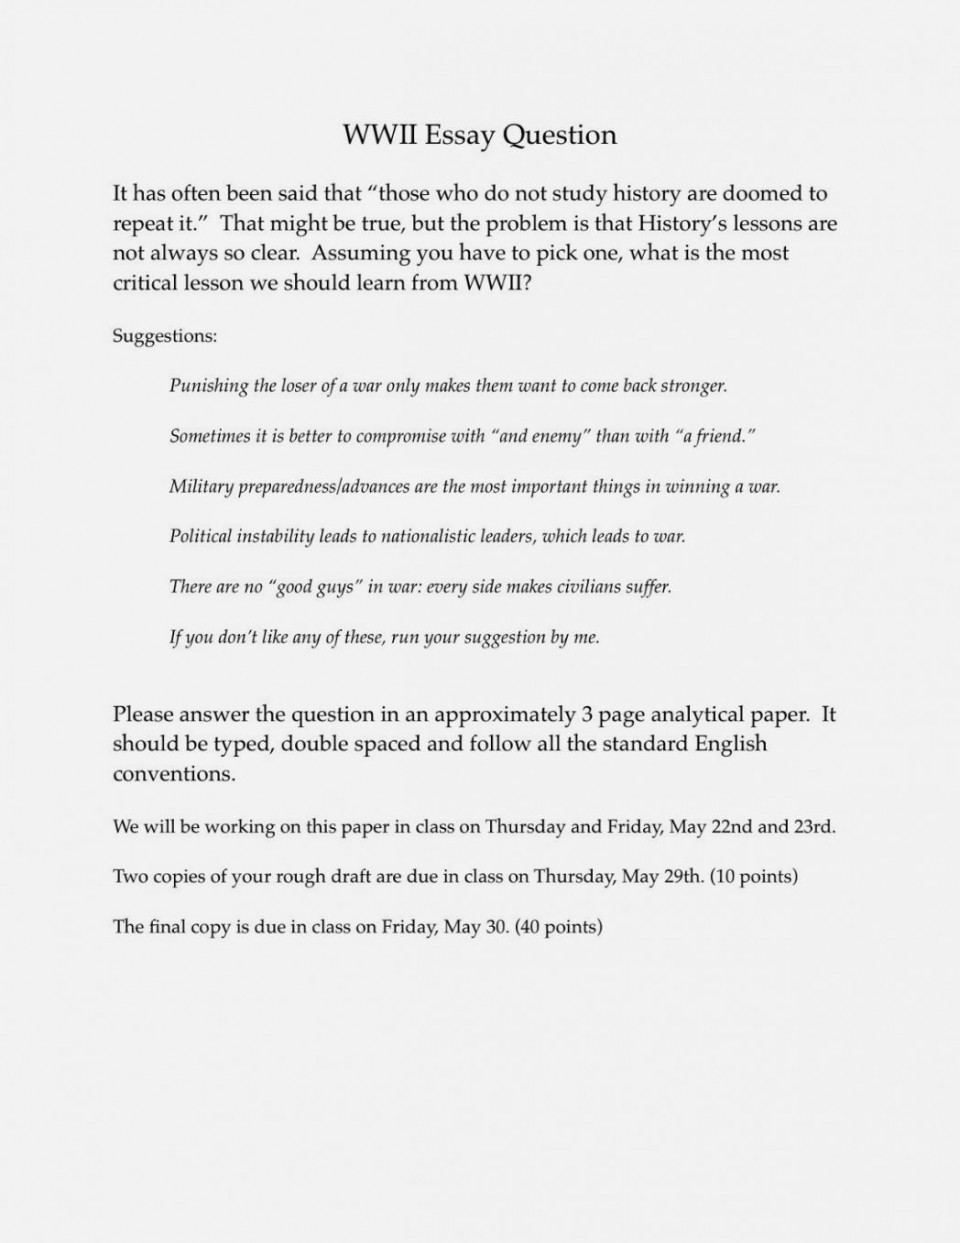 Nuclear weapons should be banned essay resume lotus notes